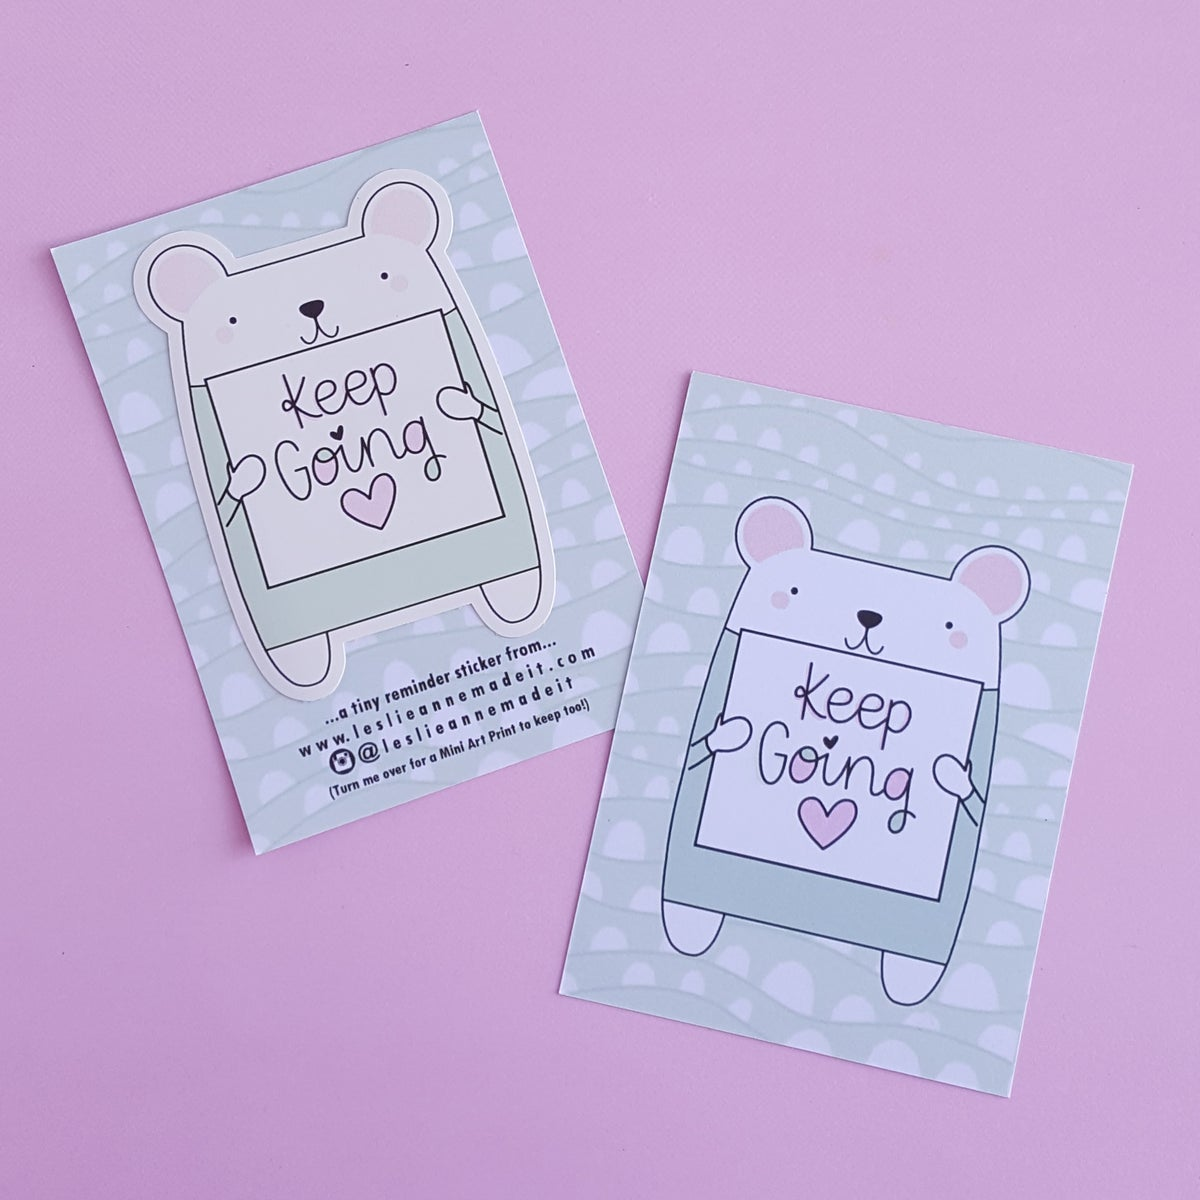 Keep Going : Illustrated Die Cut Vinyl Sticker